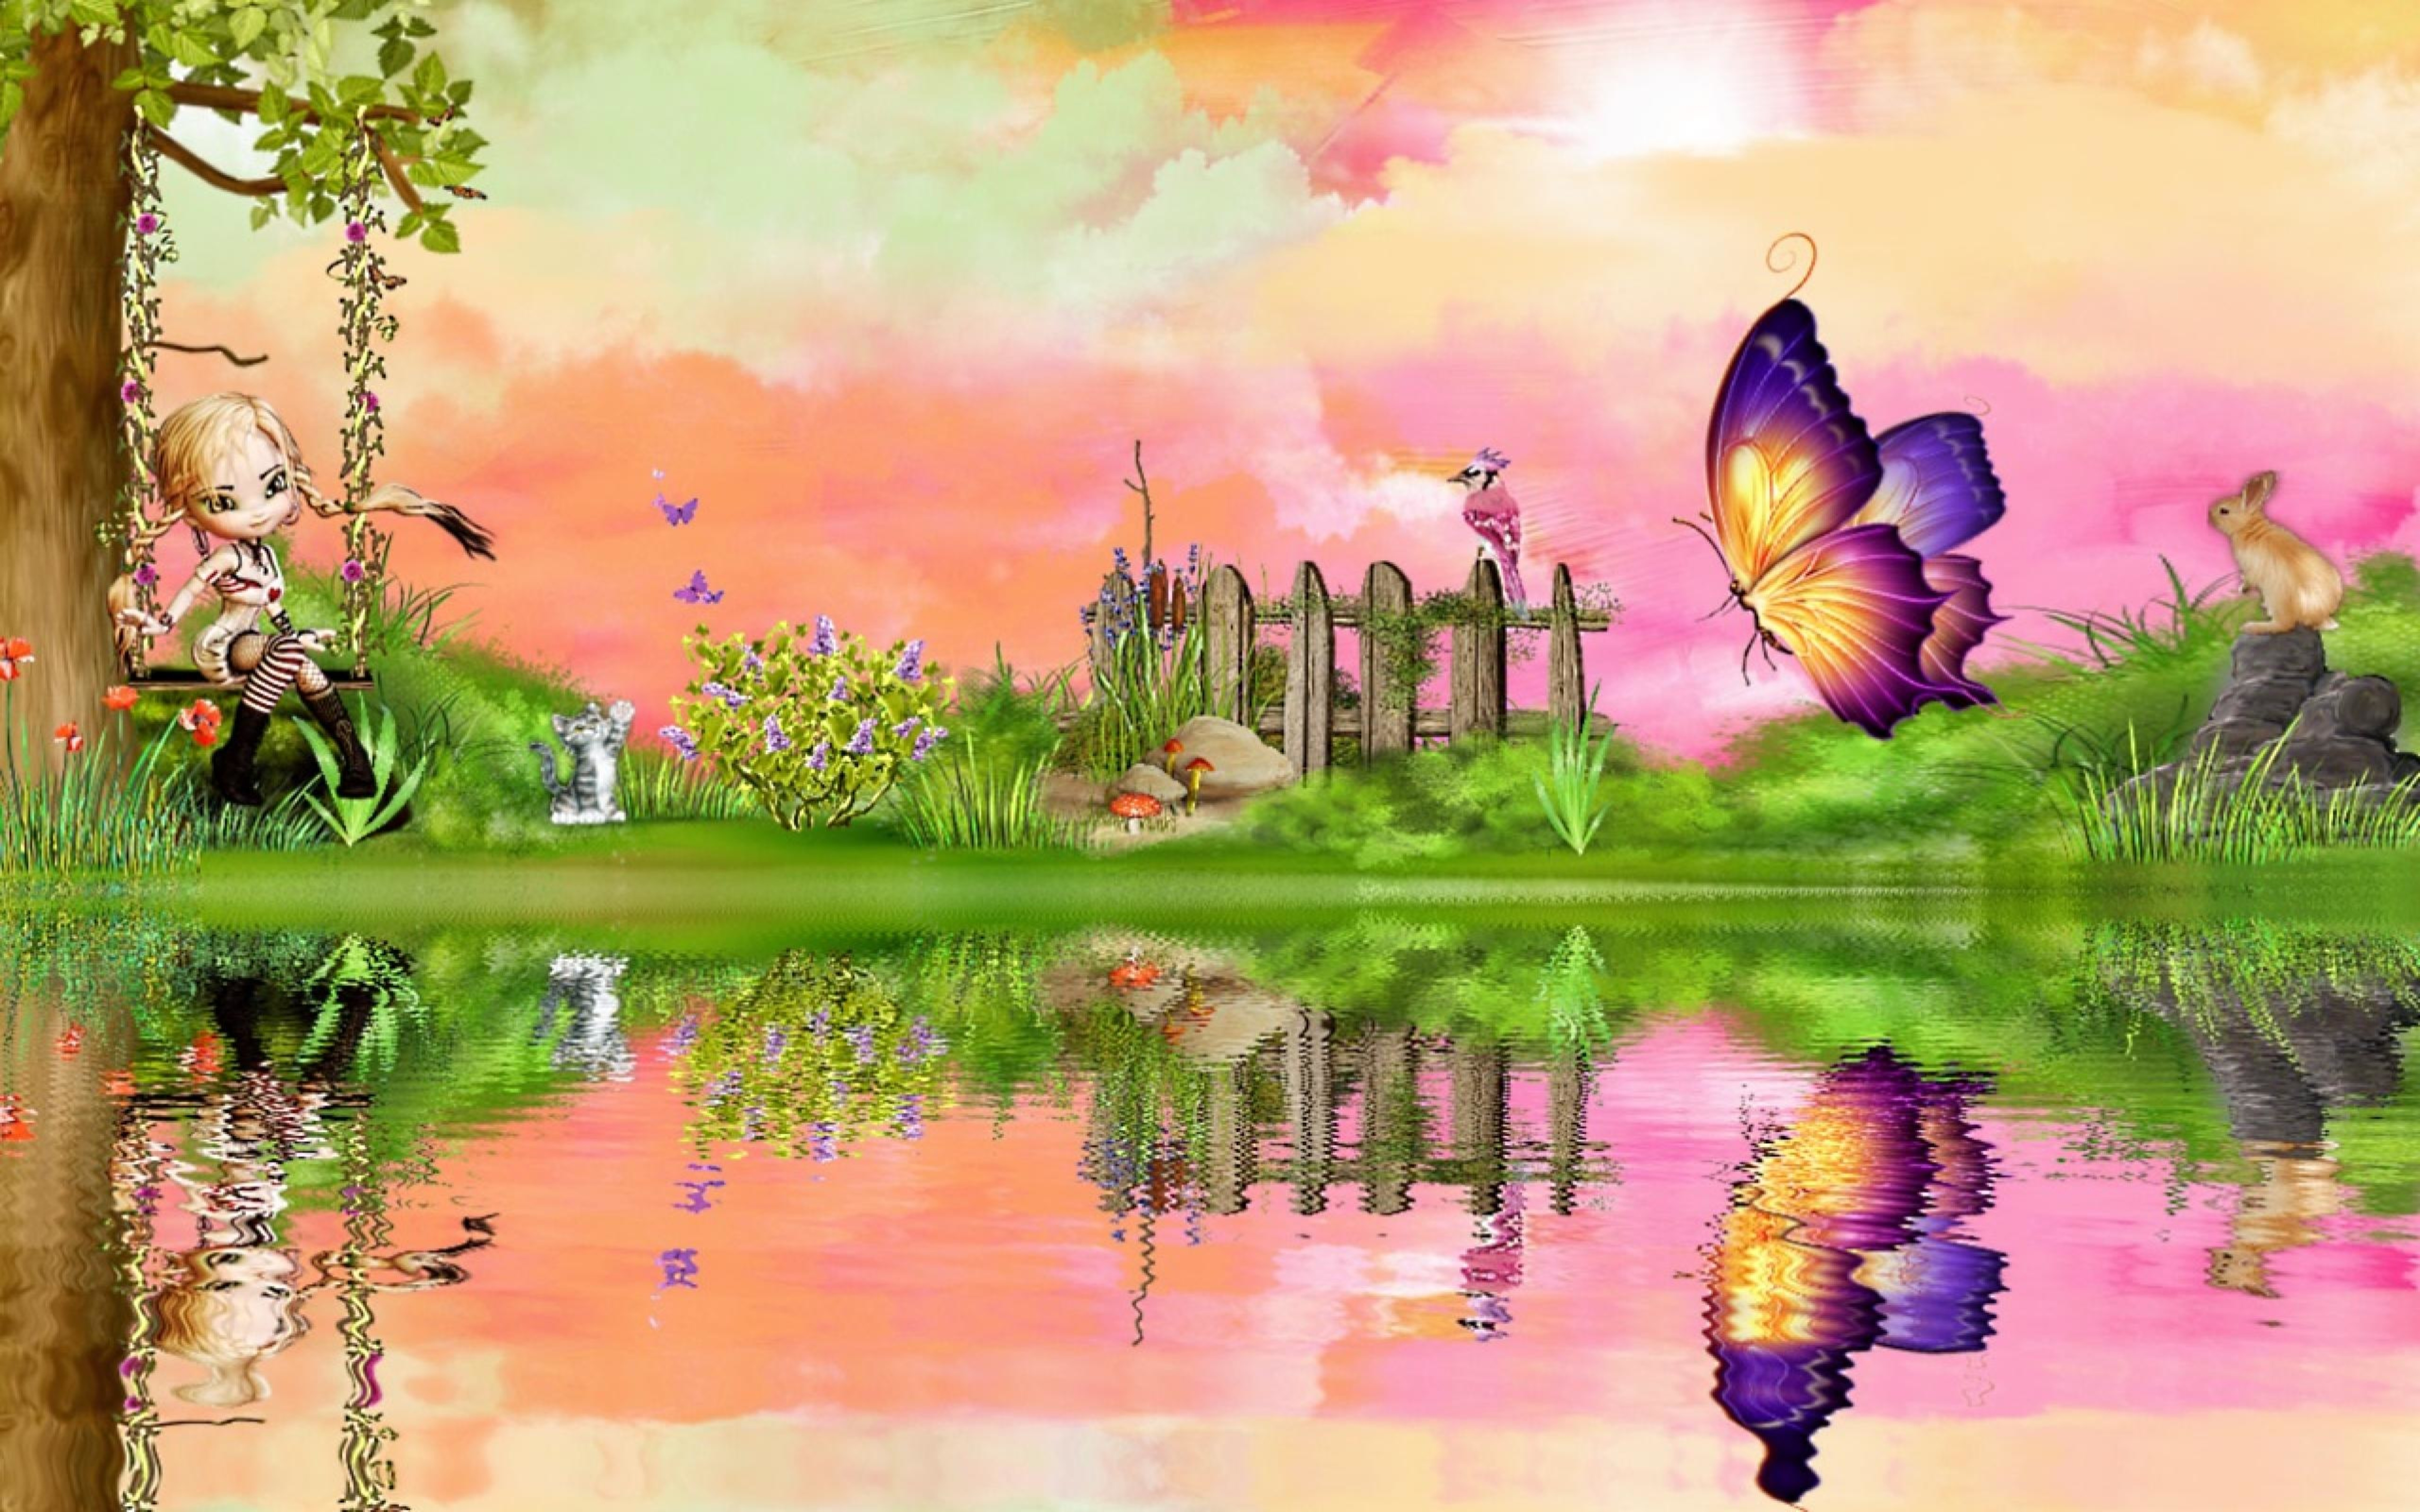 Florida clipart nature beauty. Gallery beautiful drawing images